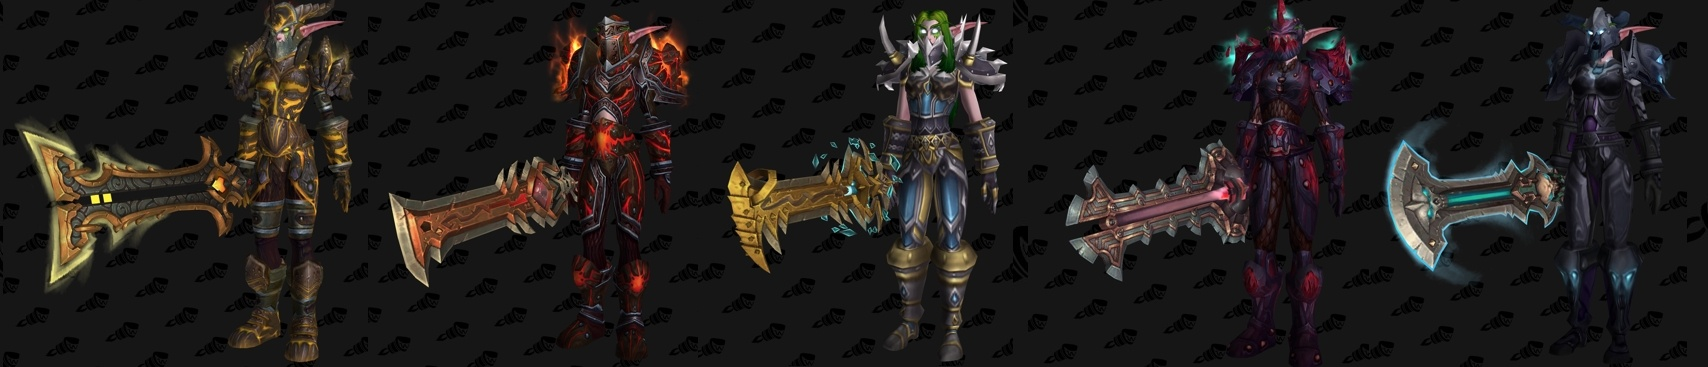 Arms Warrior Artifact Acquisition and Models, Pepe in Legion